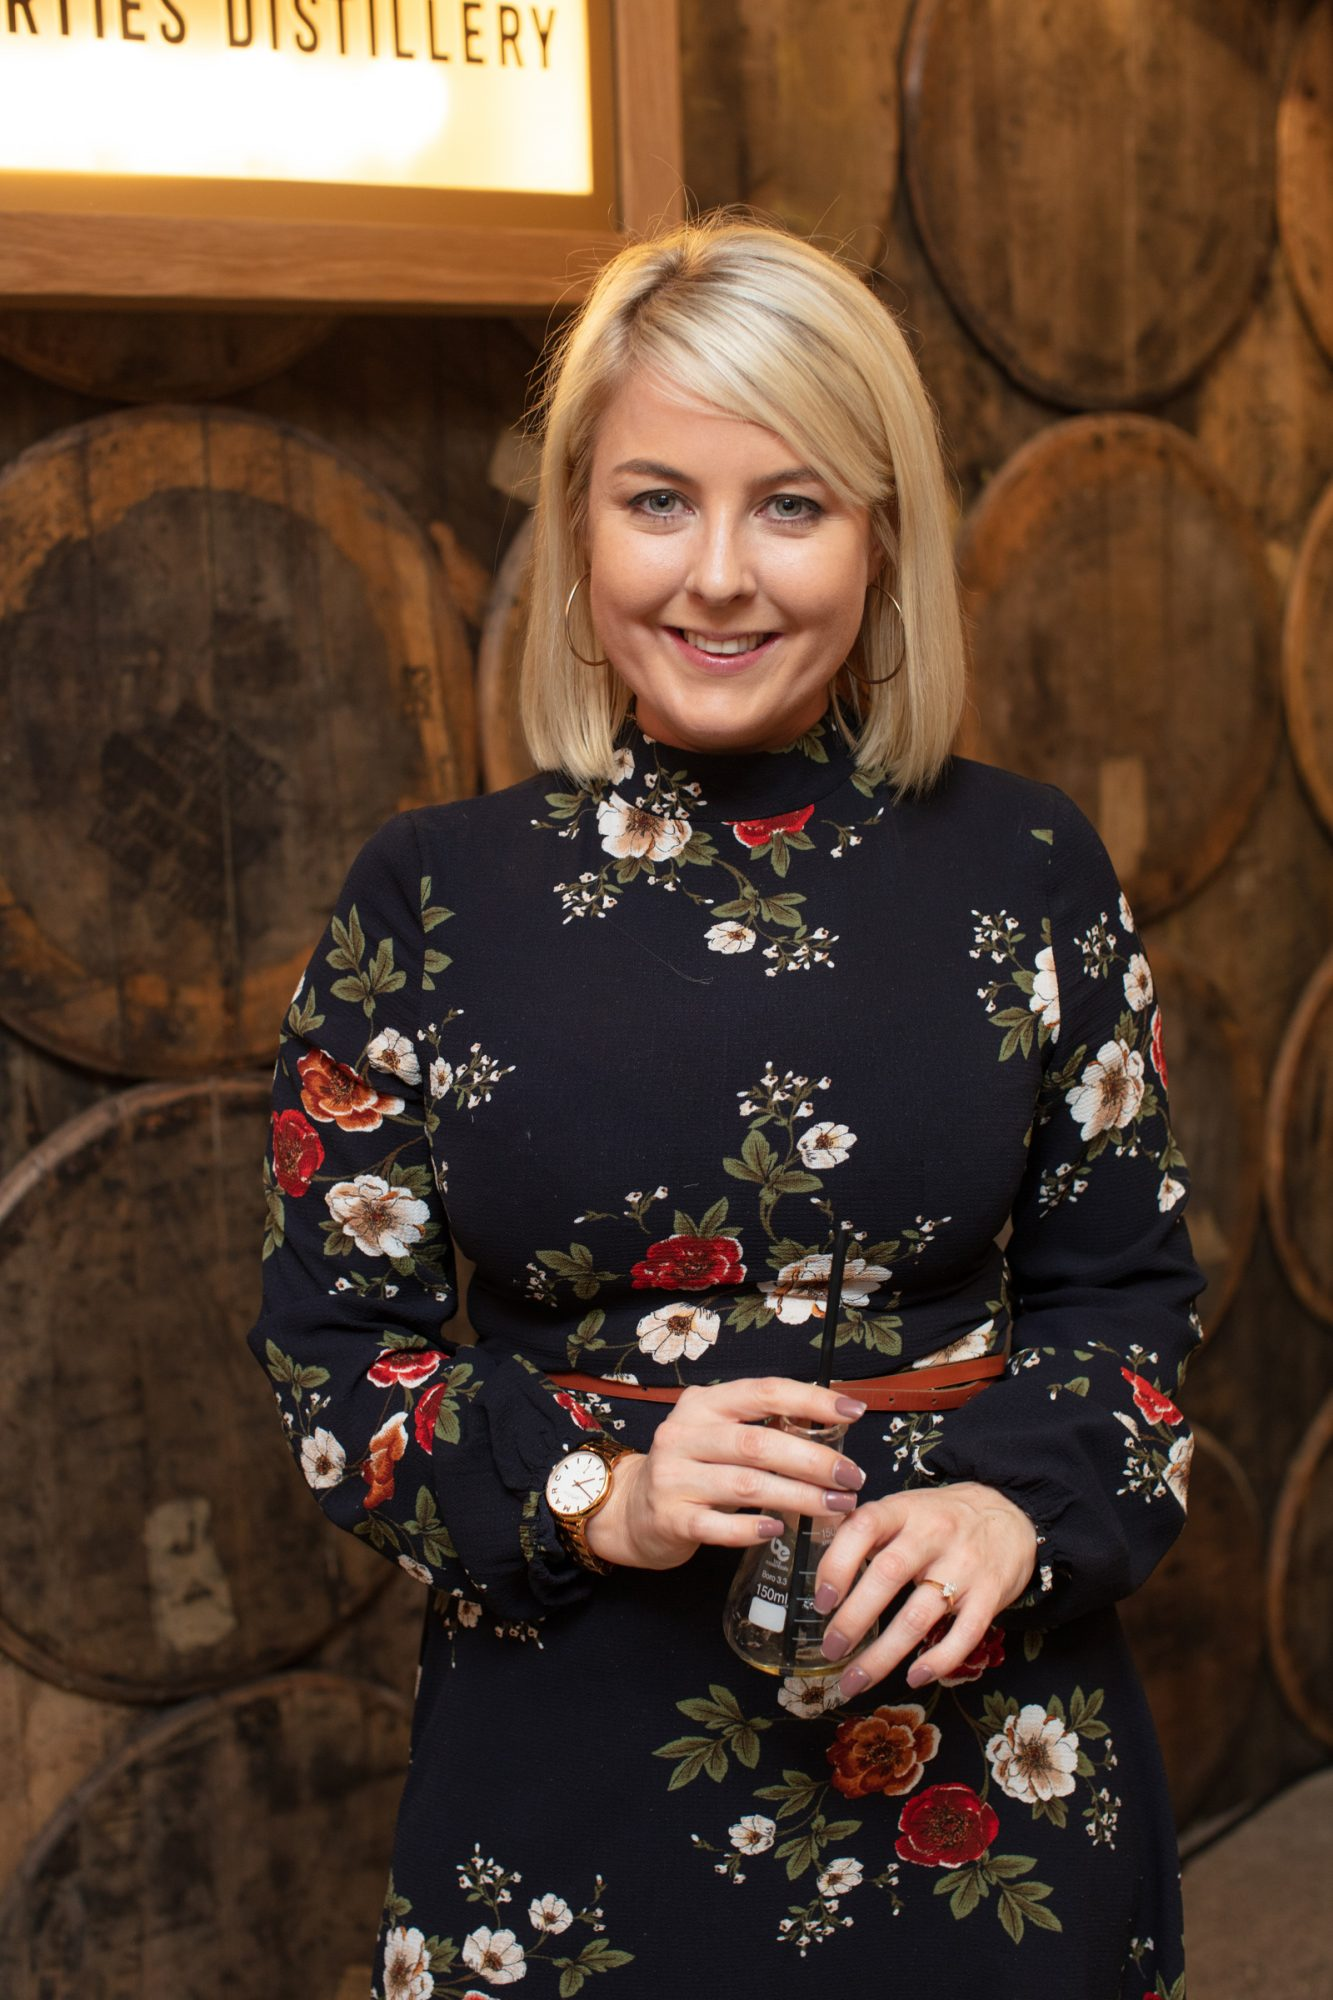 Rebecca Brady pictured at the preview of The Dublin Liberties Distillery, the much anticipated new craft distillery in the heart of the Liberties. Photo: Anthony Woods.